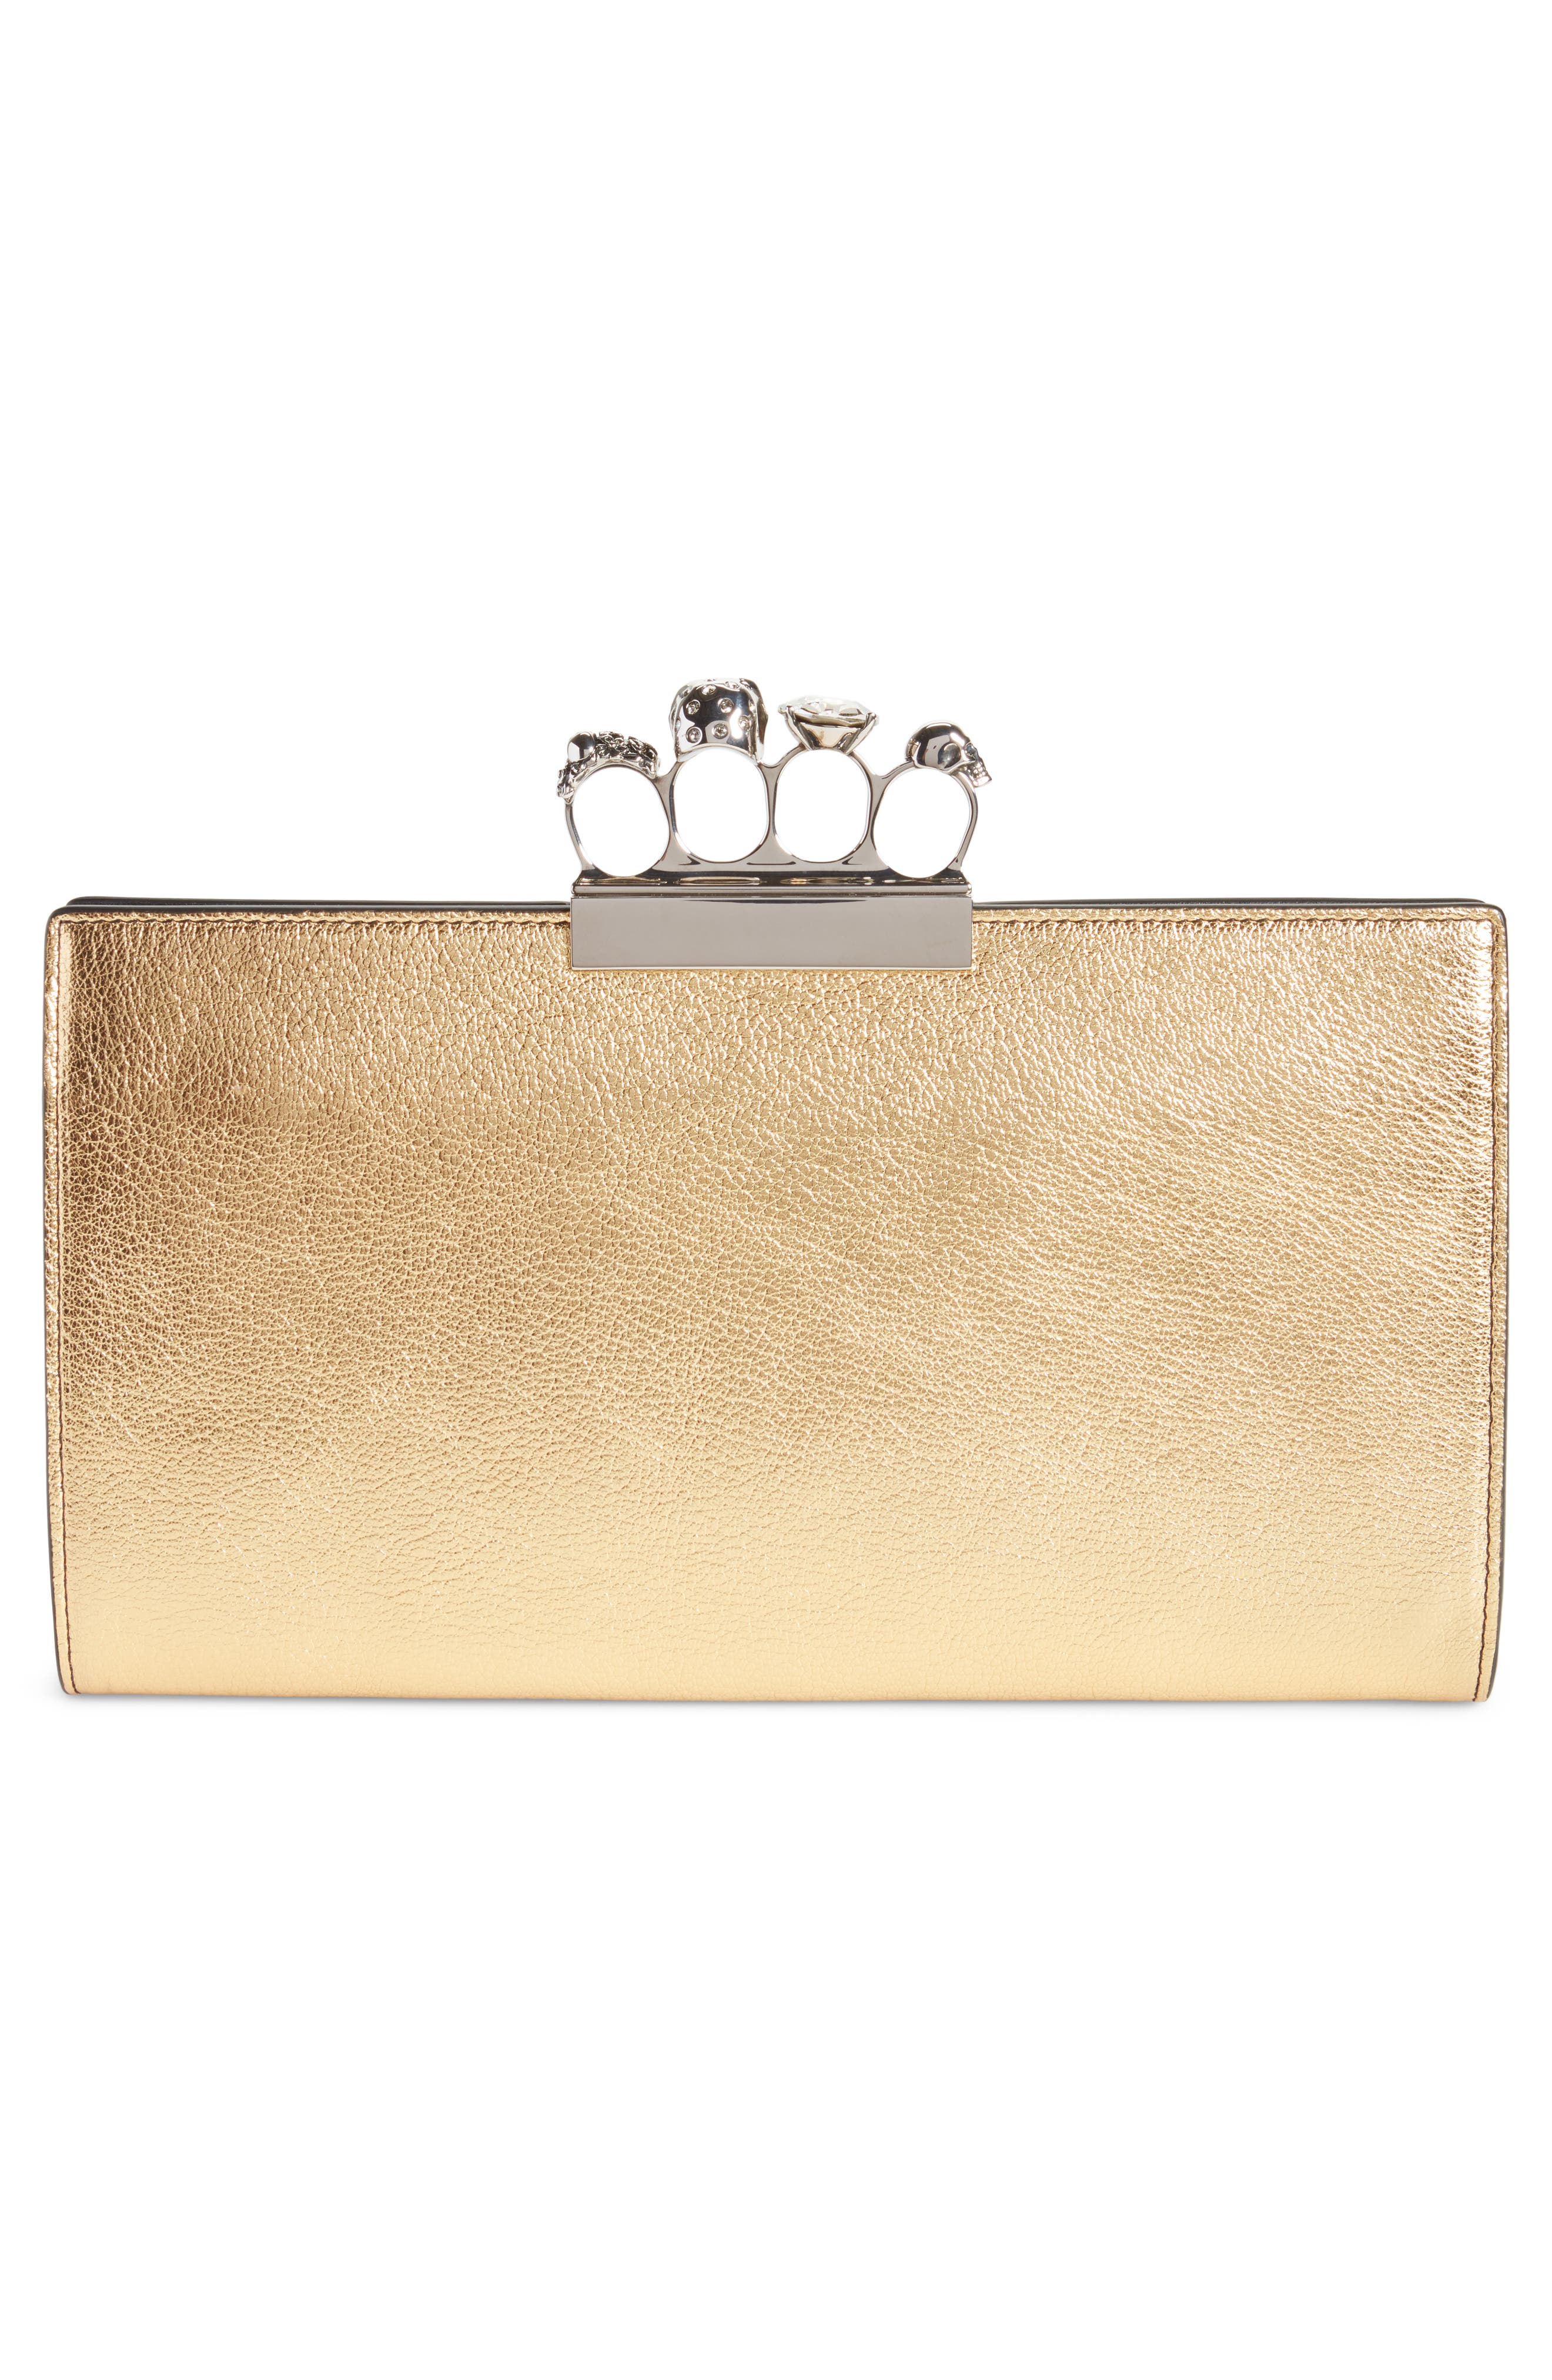 Alternate Image 3  - Alexander McQueen Knuckle Clasp Metallic Leather Clutch